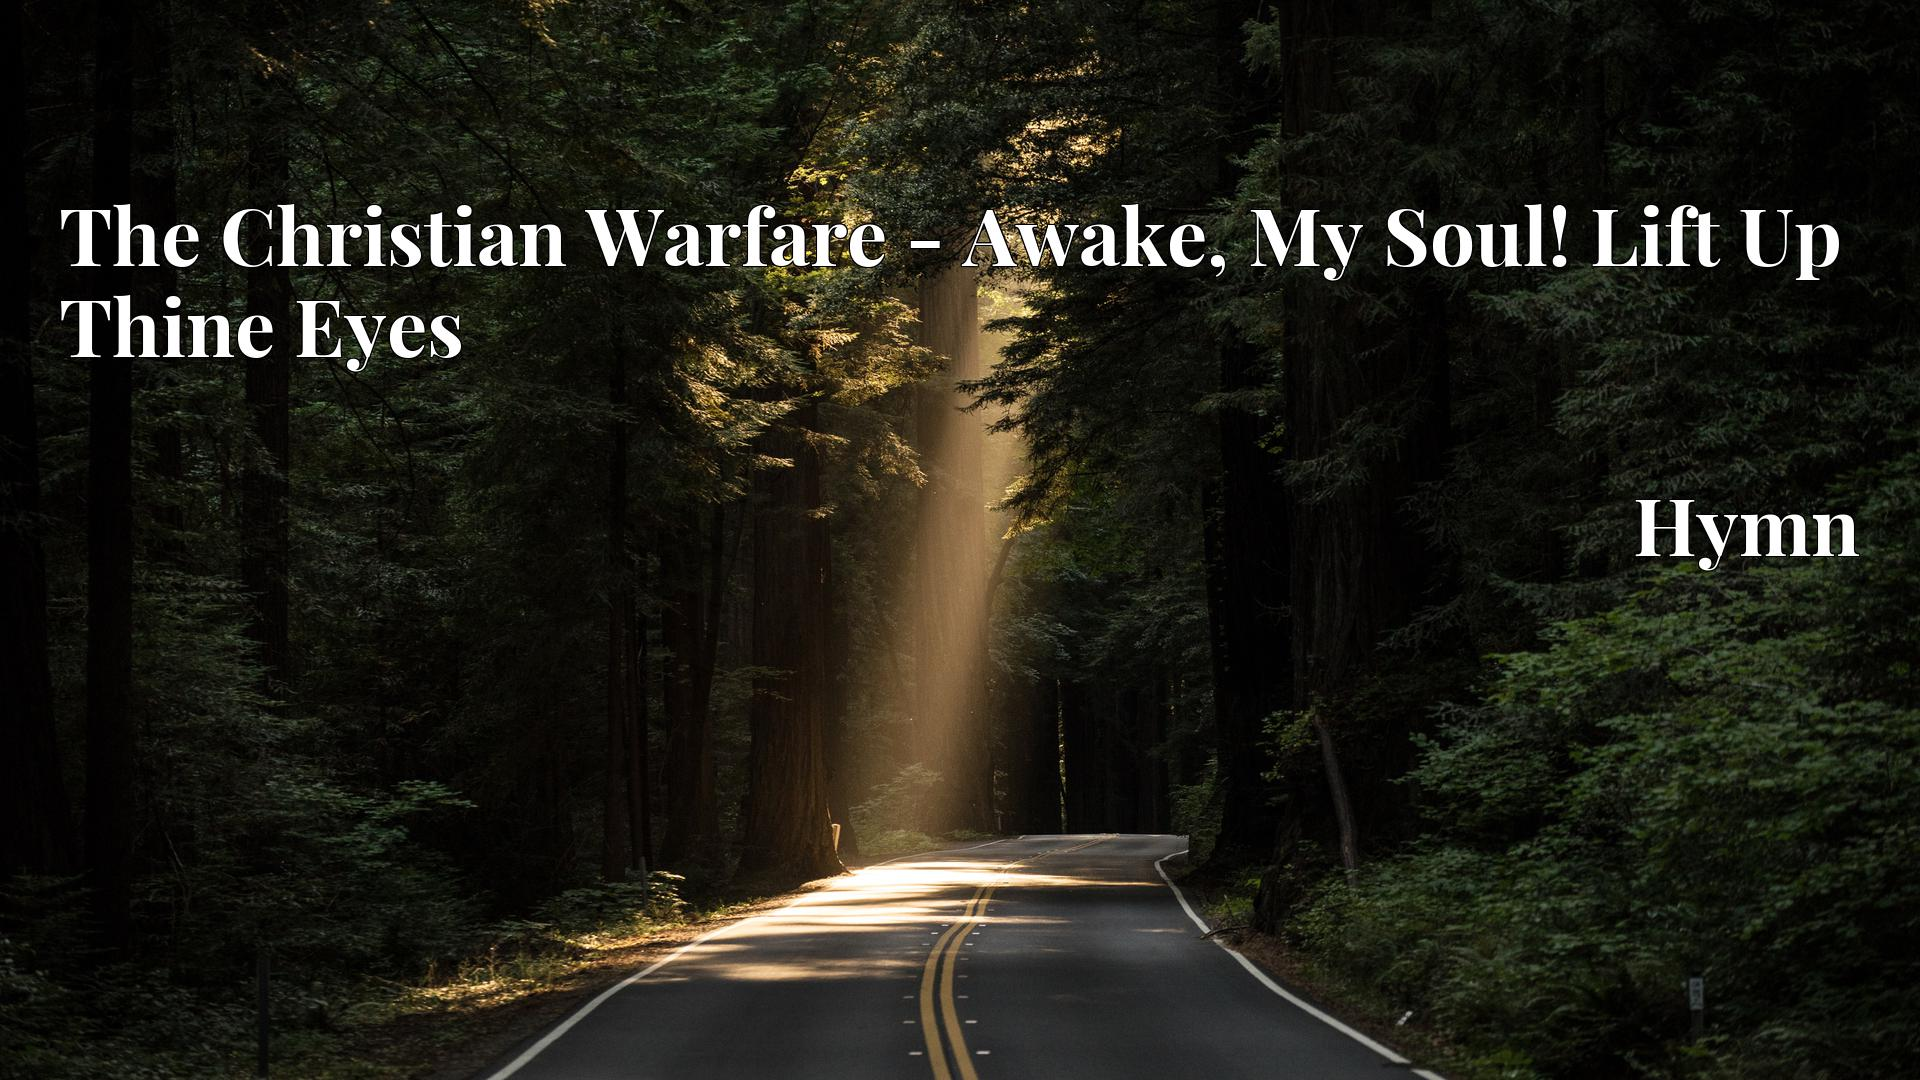 The Christian Warfare - Awake, My Soul! Lift Up Thine Eyes - Hymn